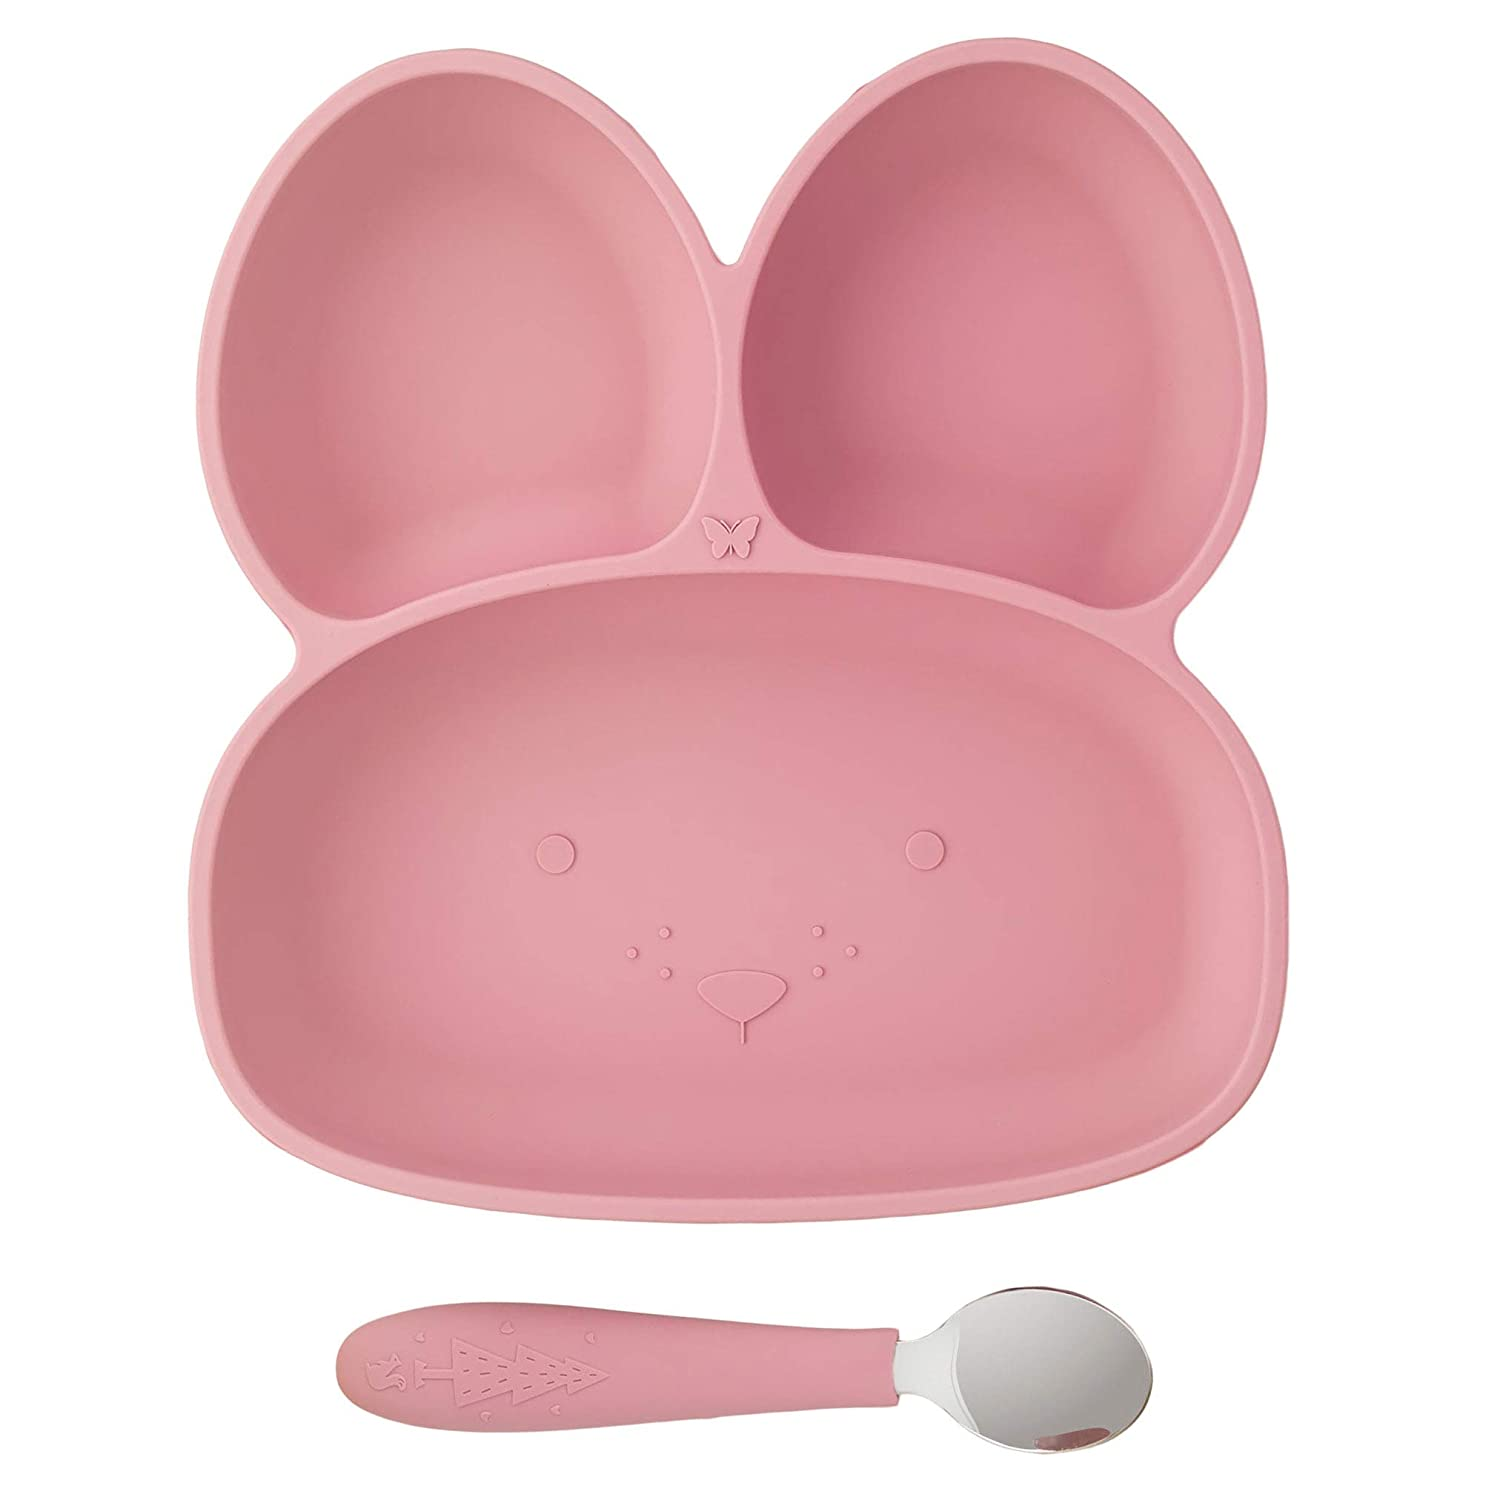 Elk and Friends Bunny Silicone Suction Plate for Babies/Toddlers + Stainless Steel Spoon | Divided Plate | Easter Fun | 4 Colors